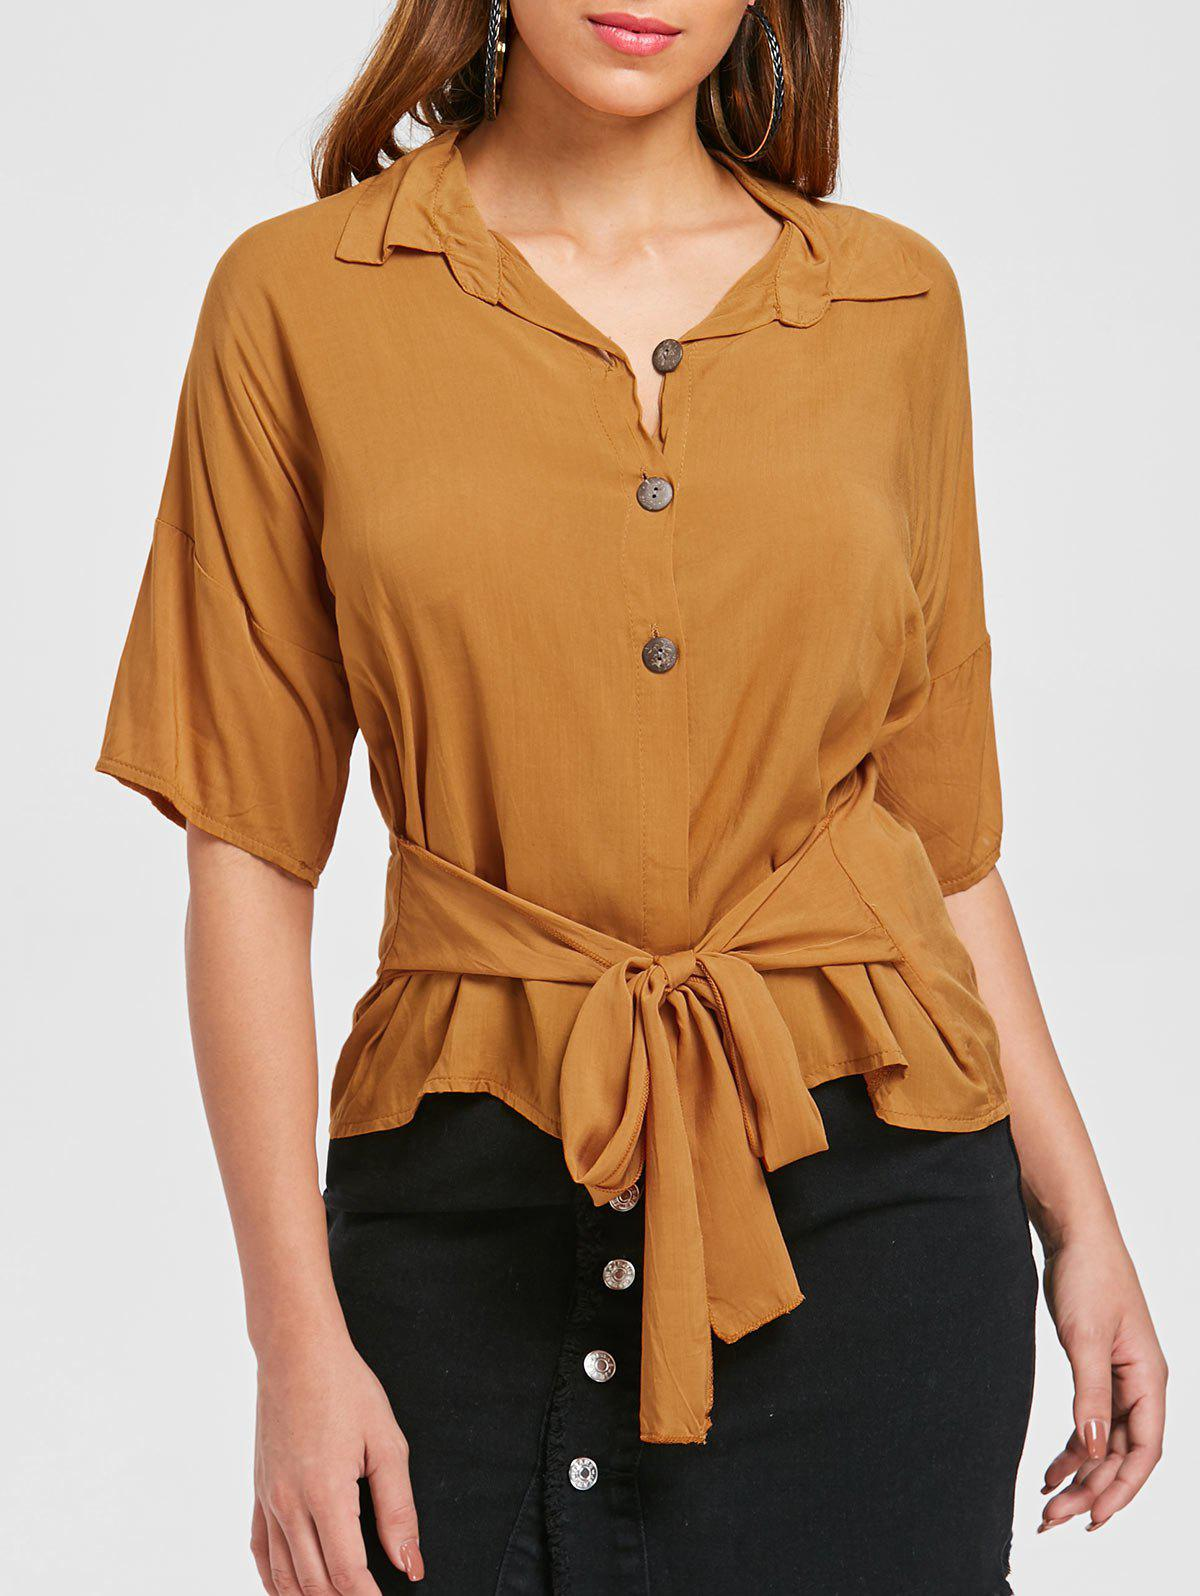 Buttoned Self Tie Shirt - ORANGE GOLD L